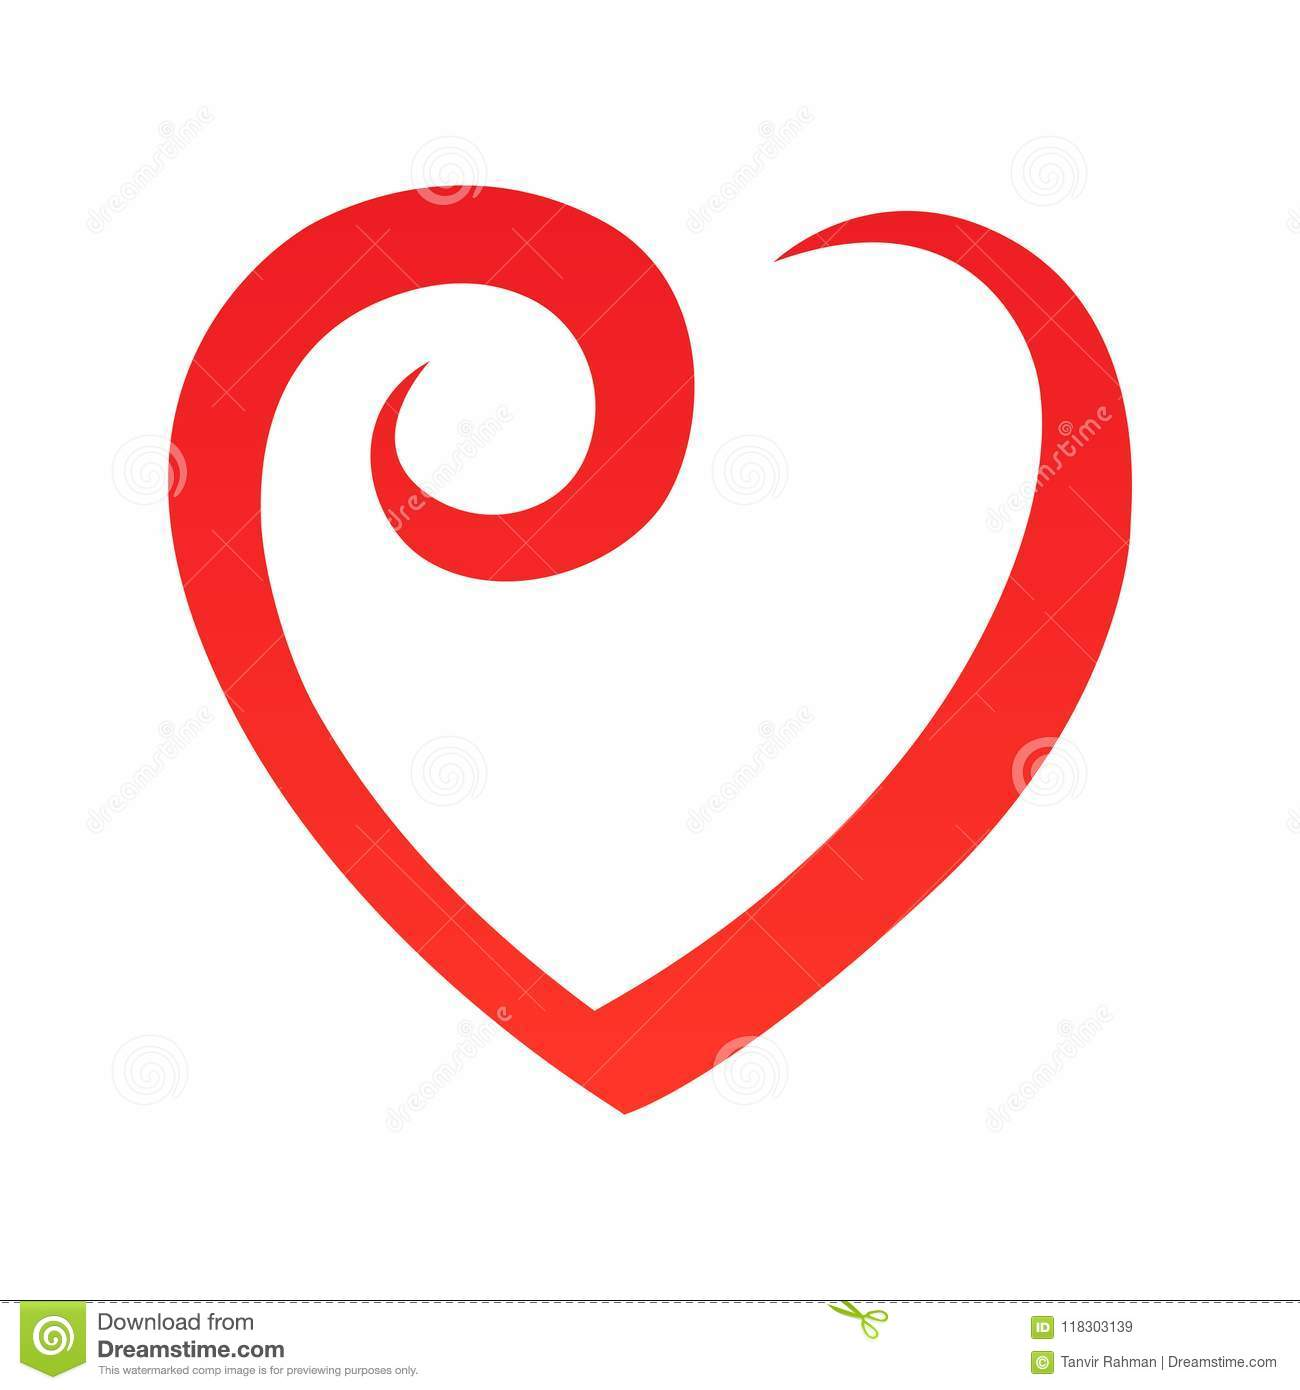 abstract heart shape outline vector illustration red heart icon in